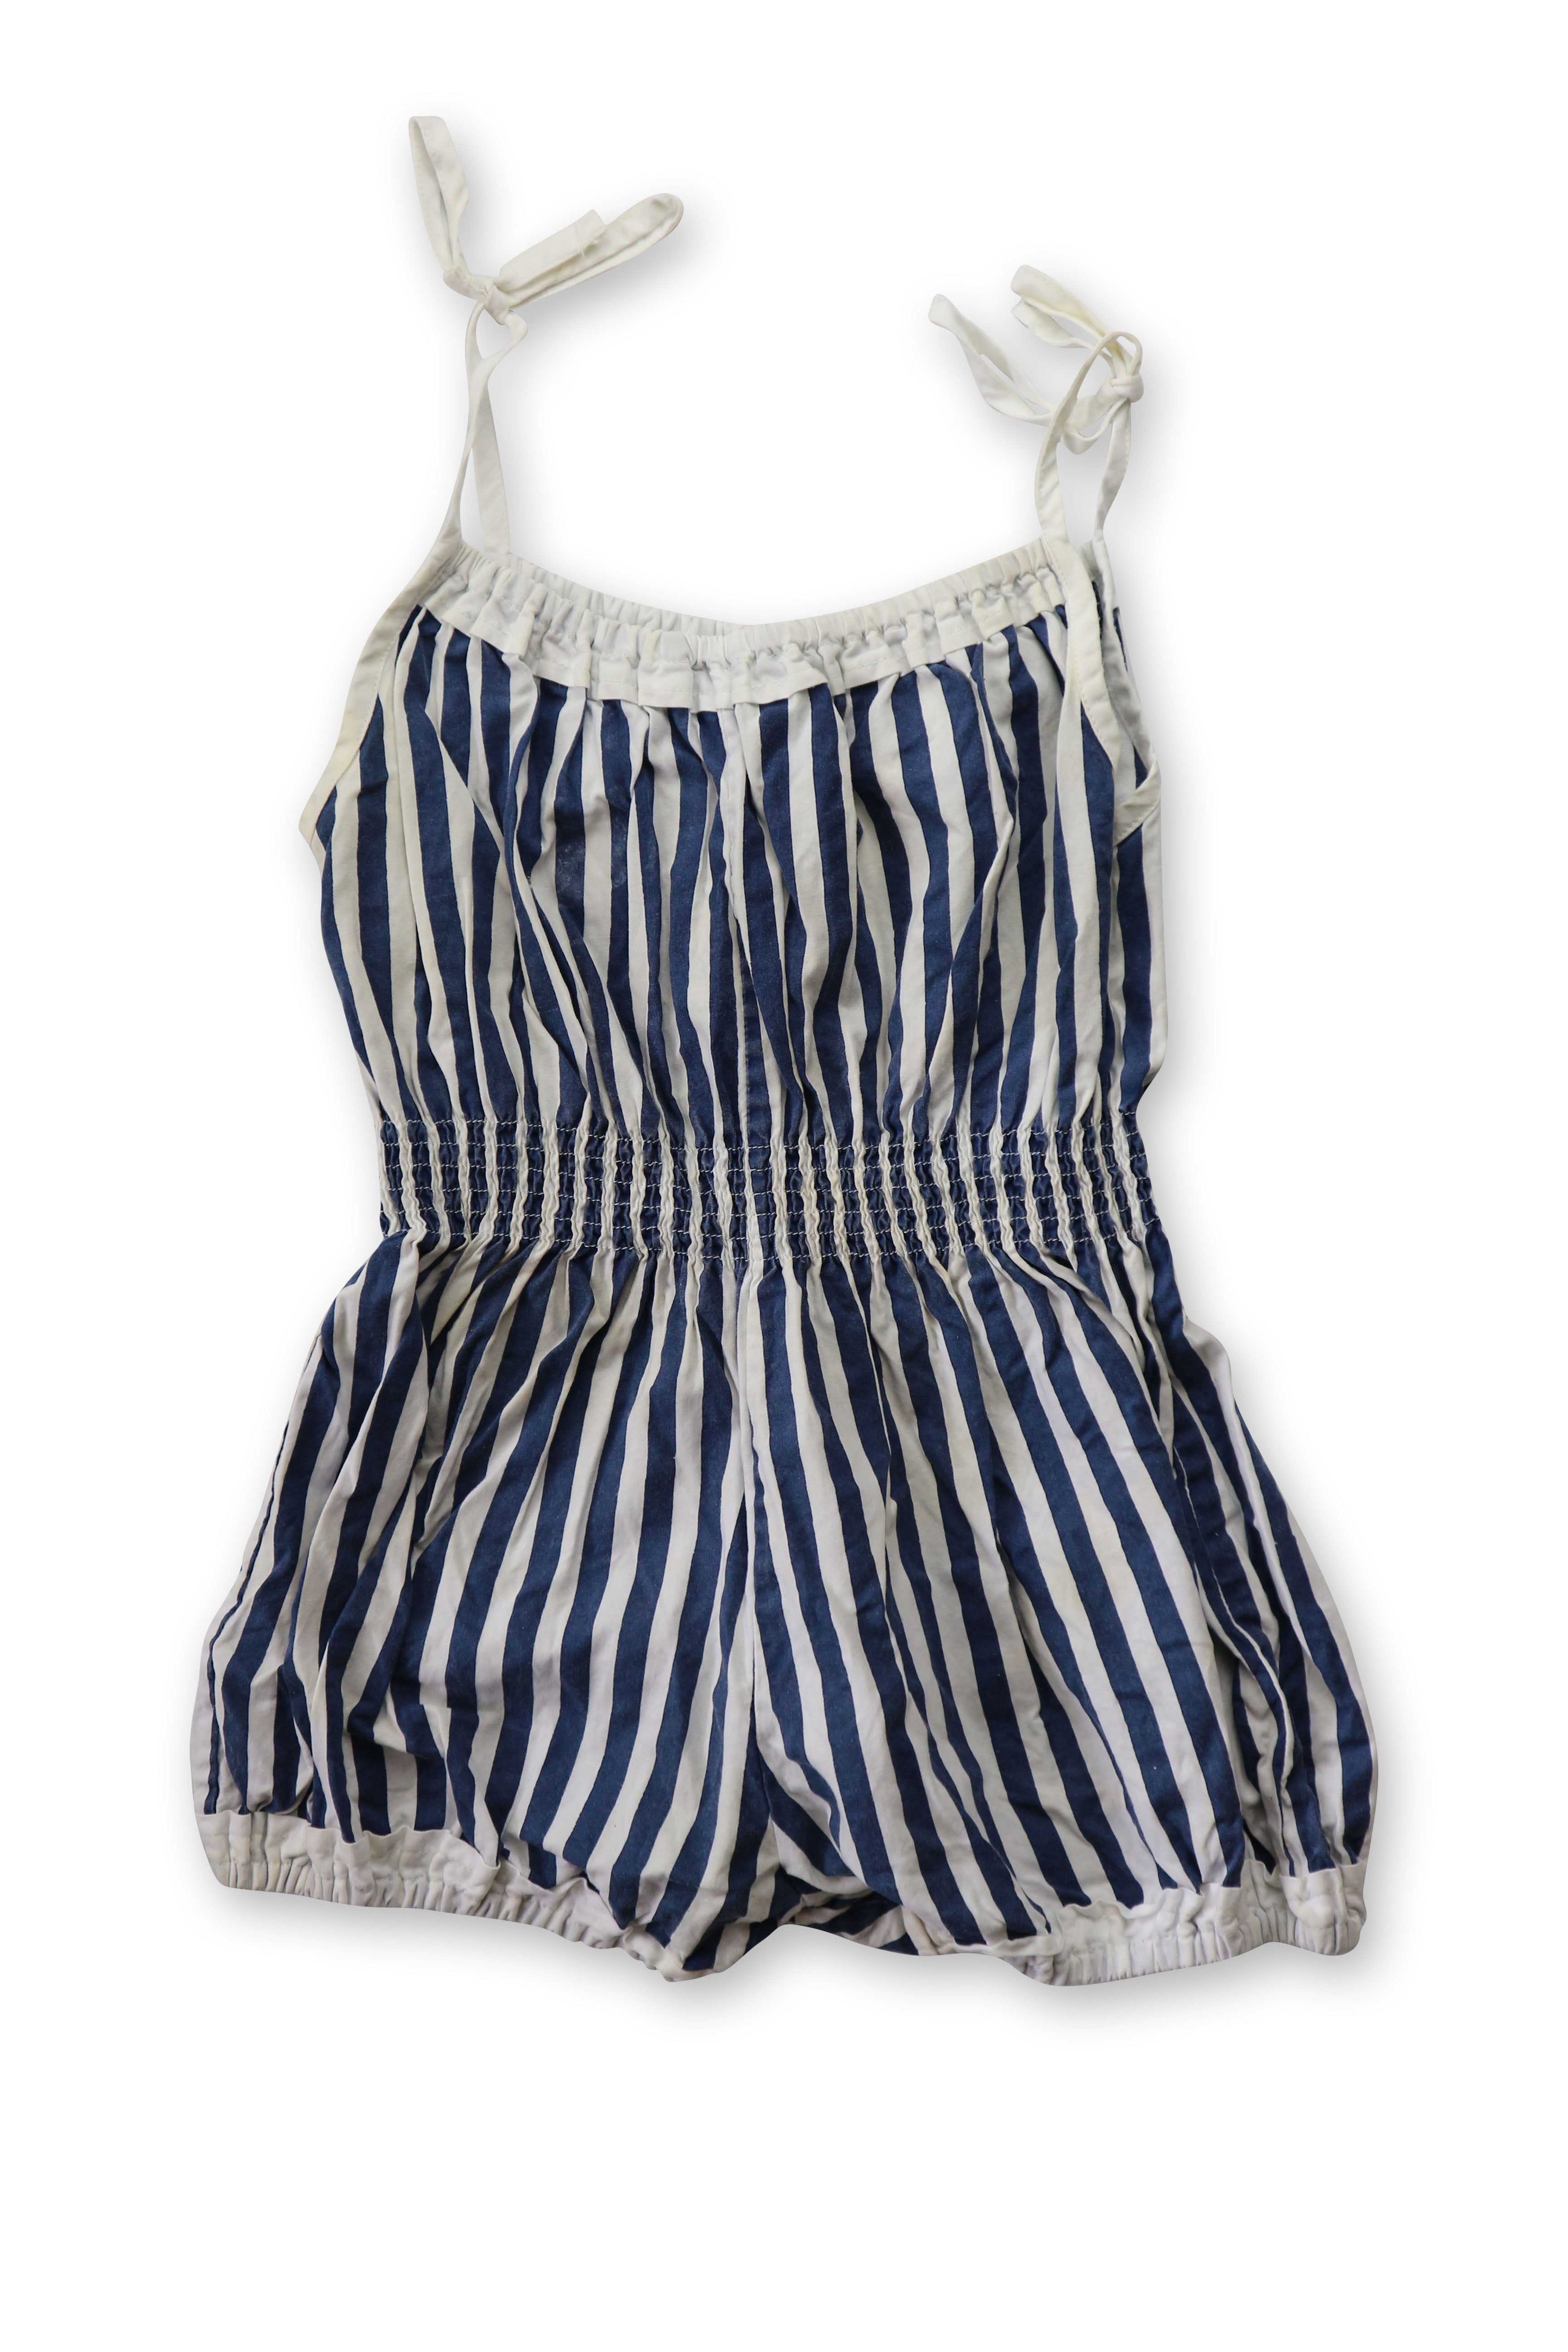 Wovenplay Playsuit size 1-2